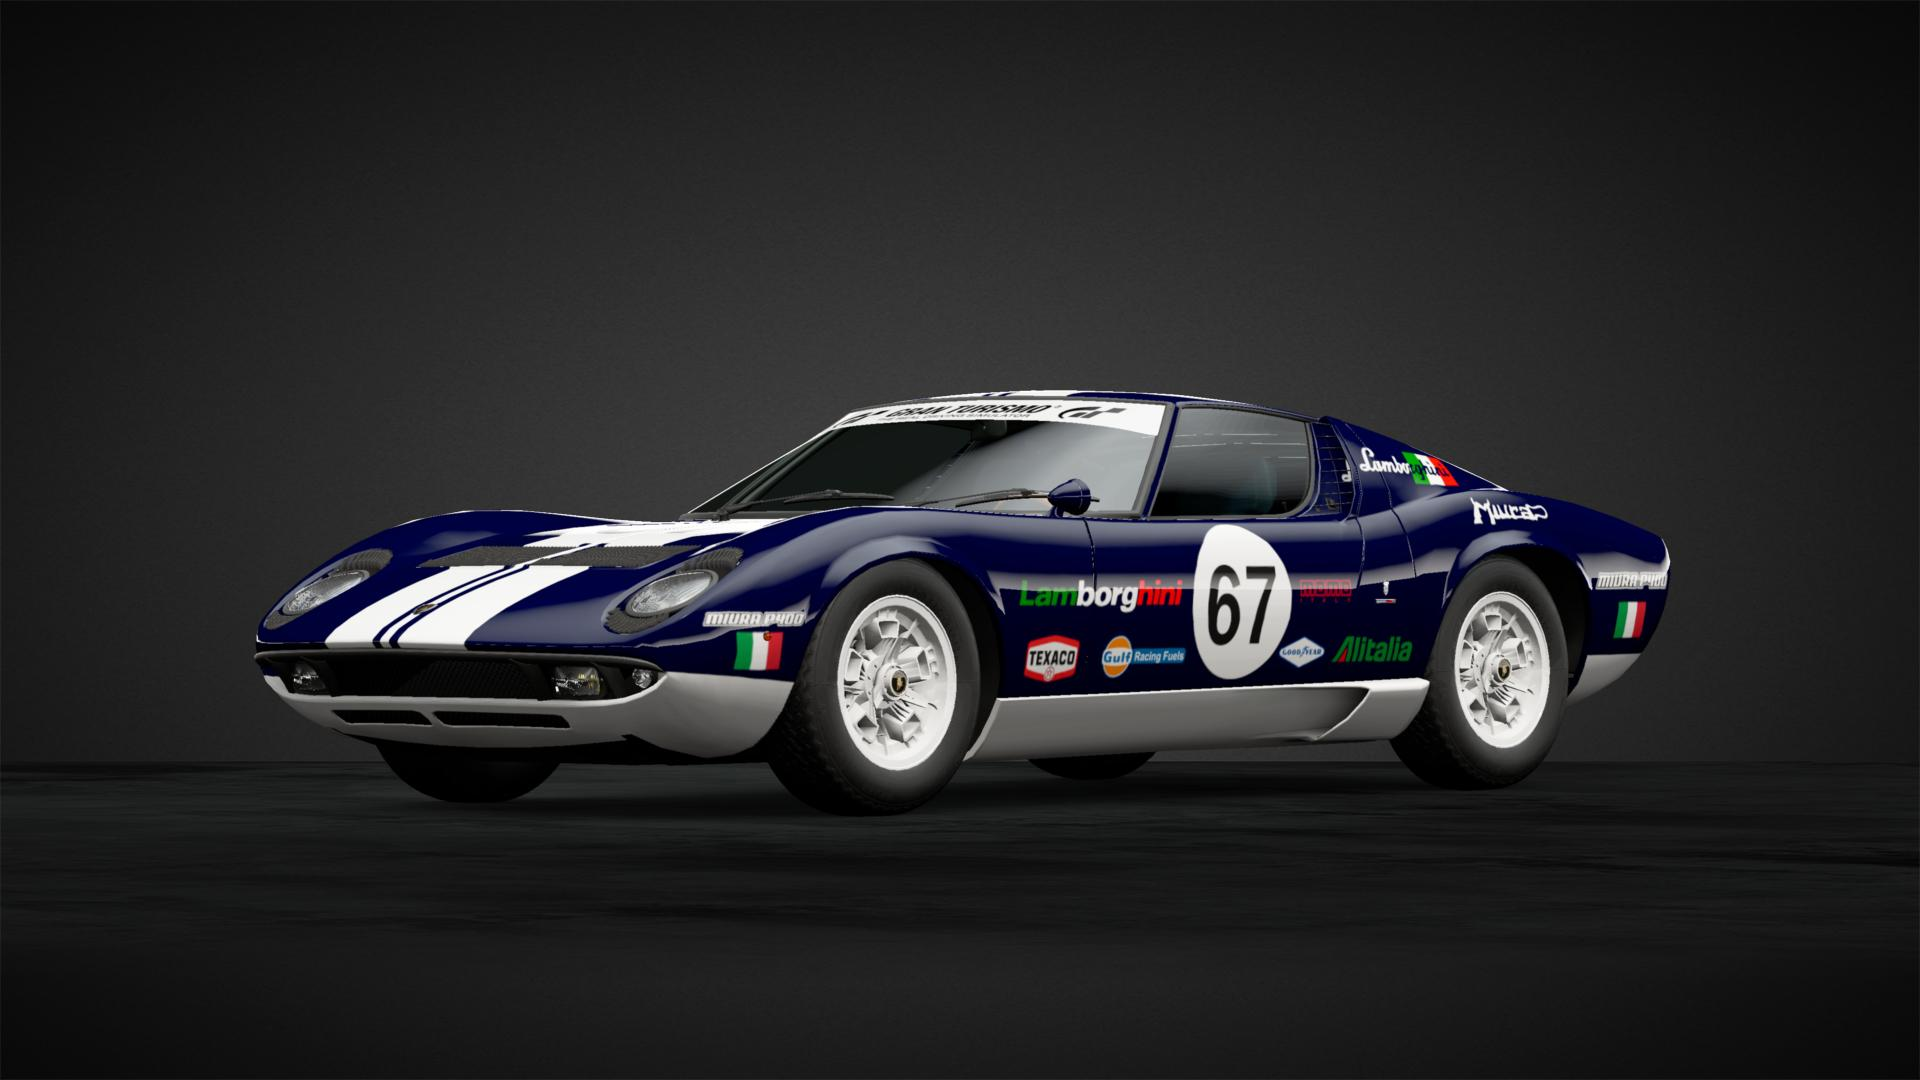 Lamborghini Miura P400 Race Car Car Livery By Scottjr123